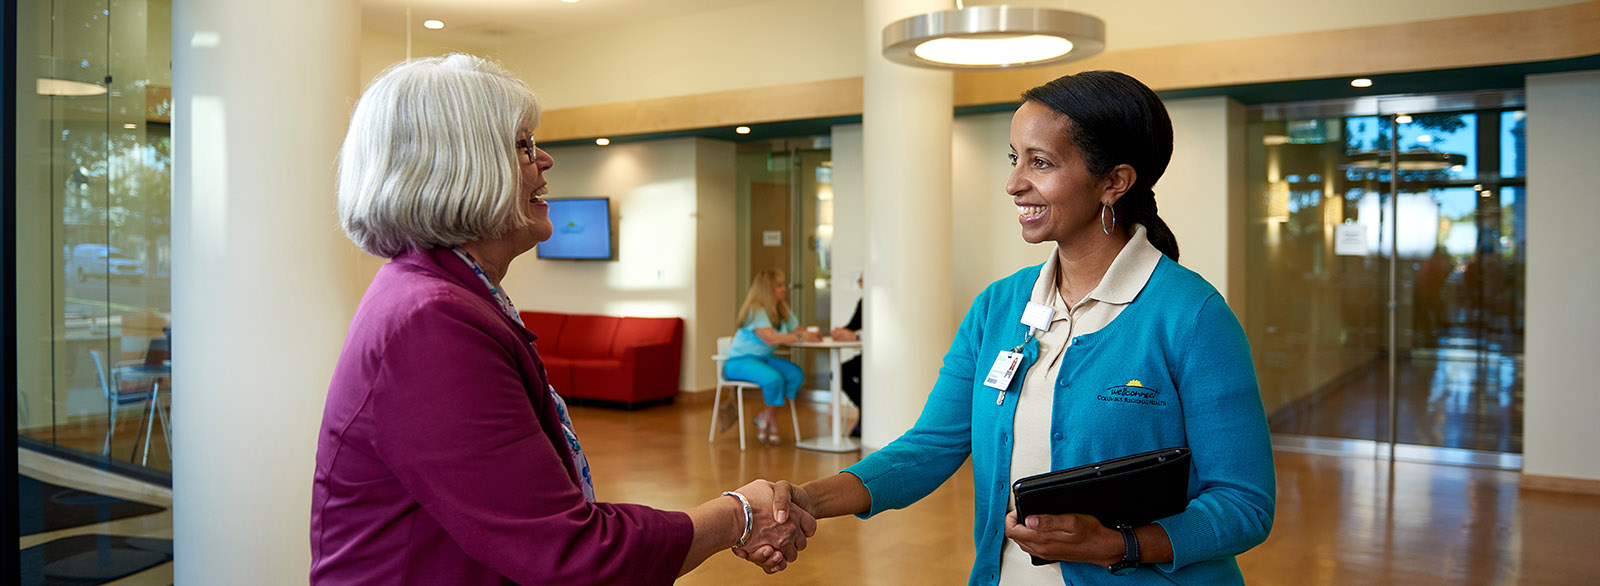 Connection specialist greeting a visitor with a handshake at WellConnect